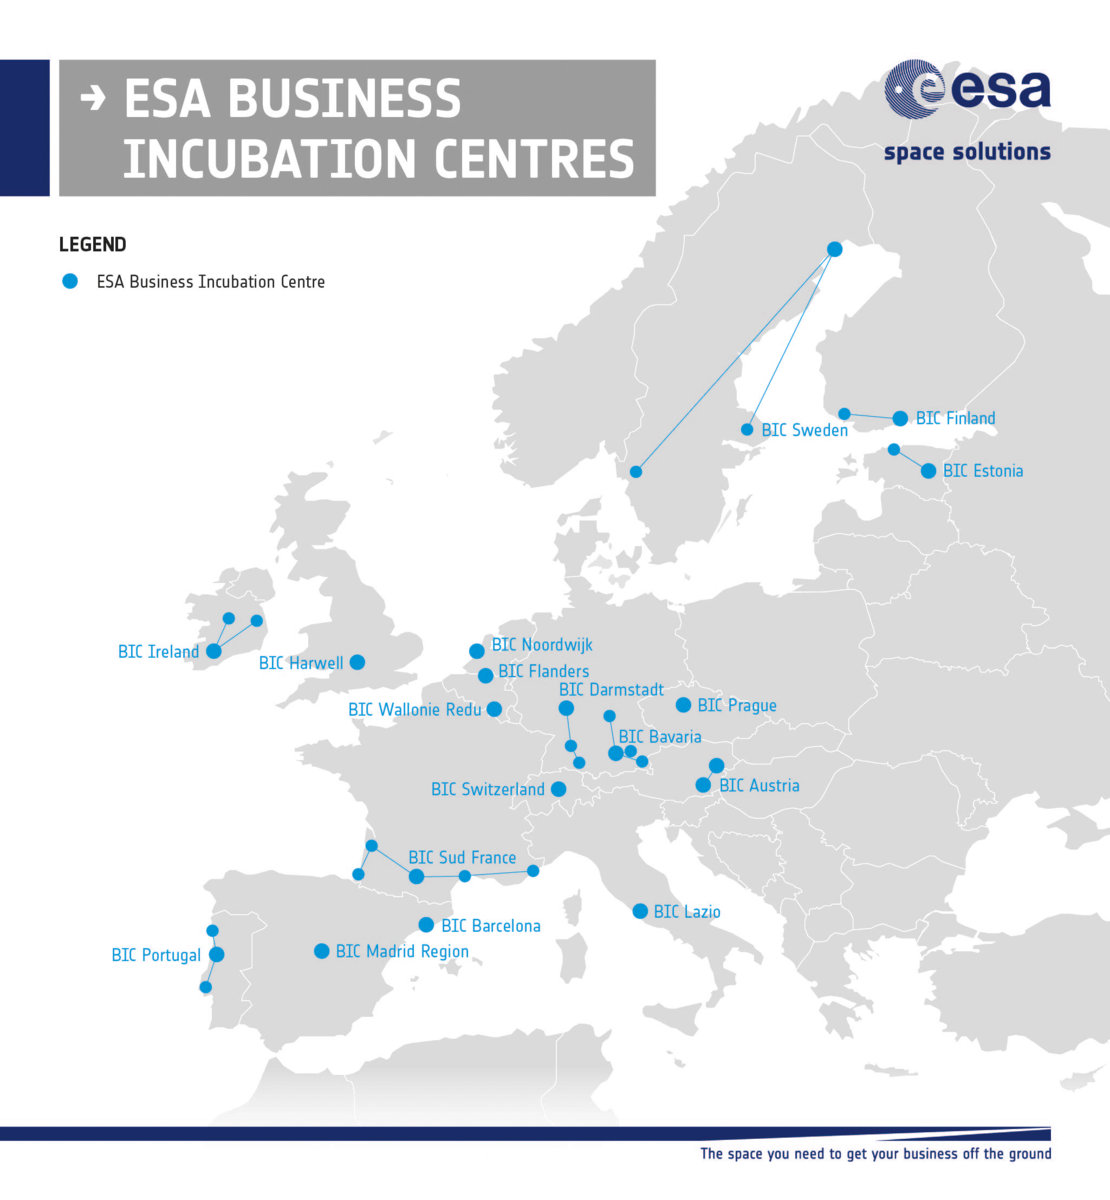 ESA Business Incubation Centres - December 2017